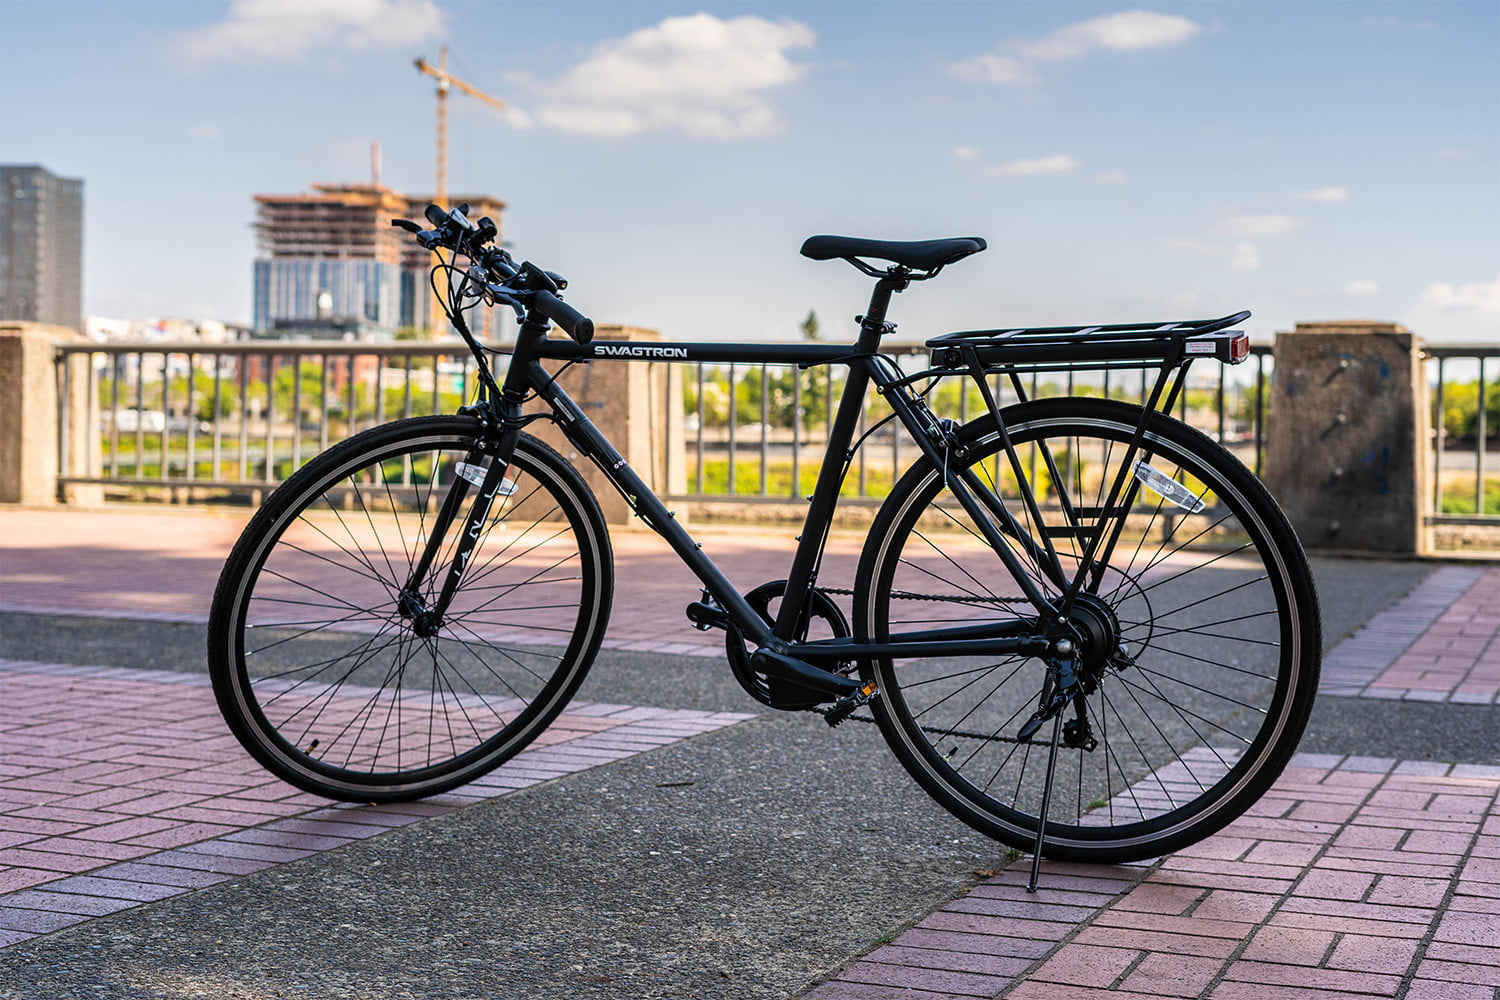 Swagtron EB12 electric bike review: The bare necessities